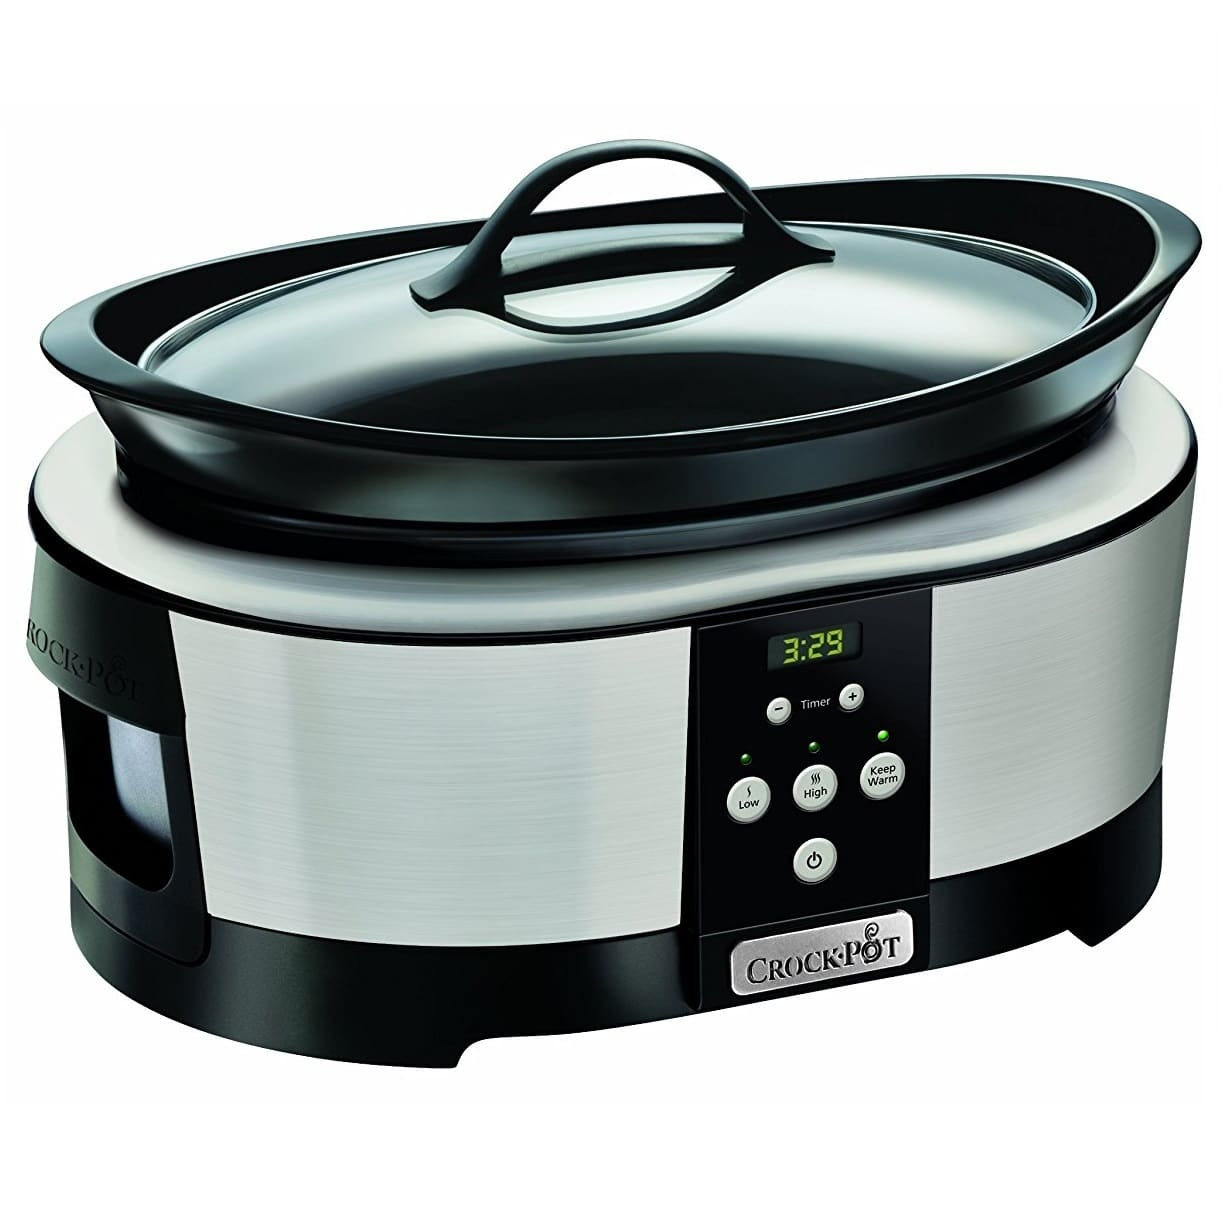 CROCK-POT SLOW COOKER BLACK/STAINLESS STEEL 5.7L (For 6)